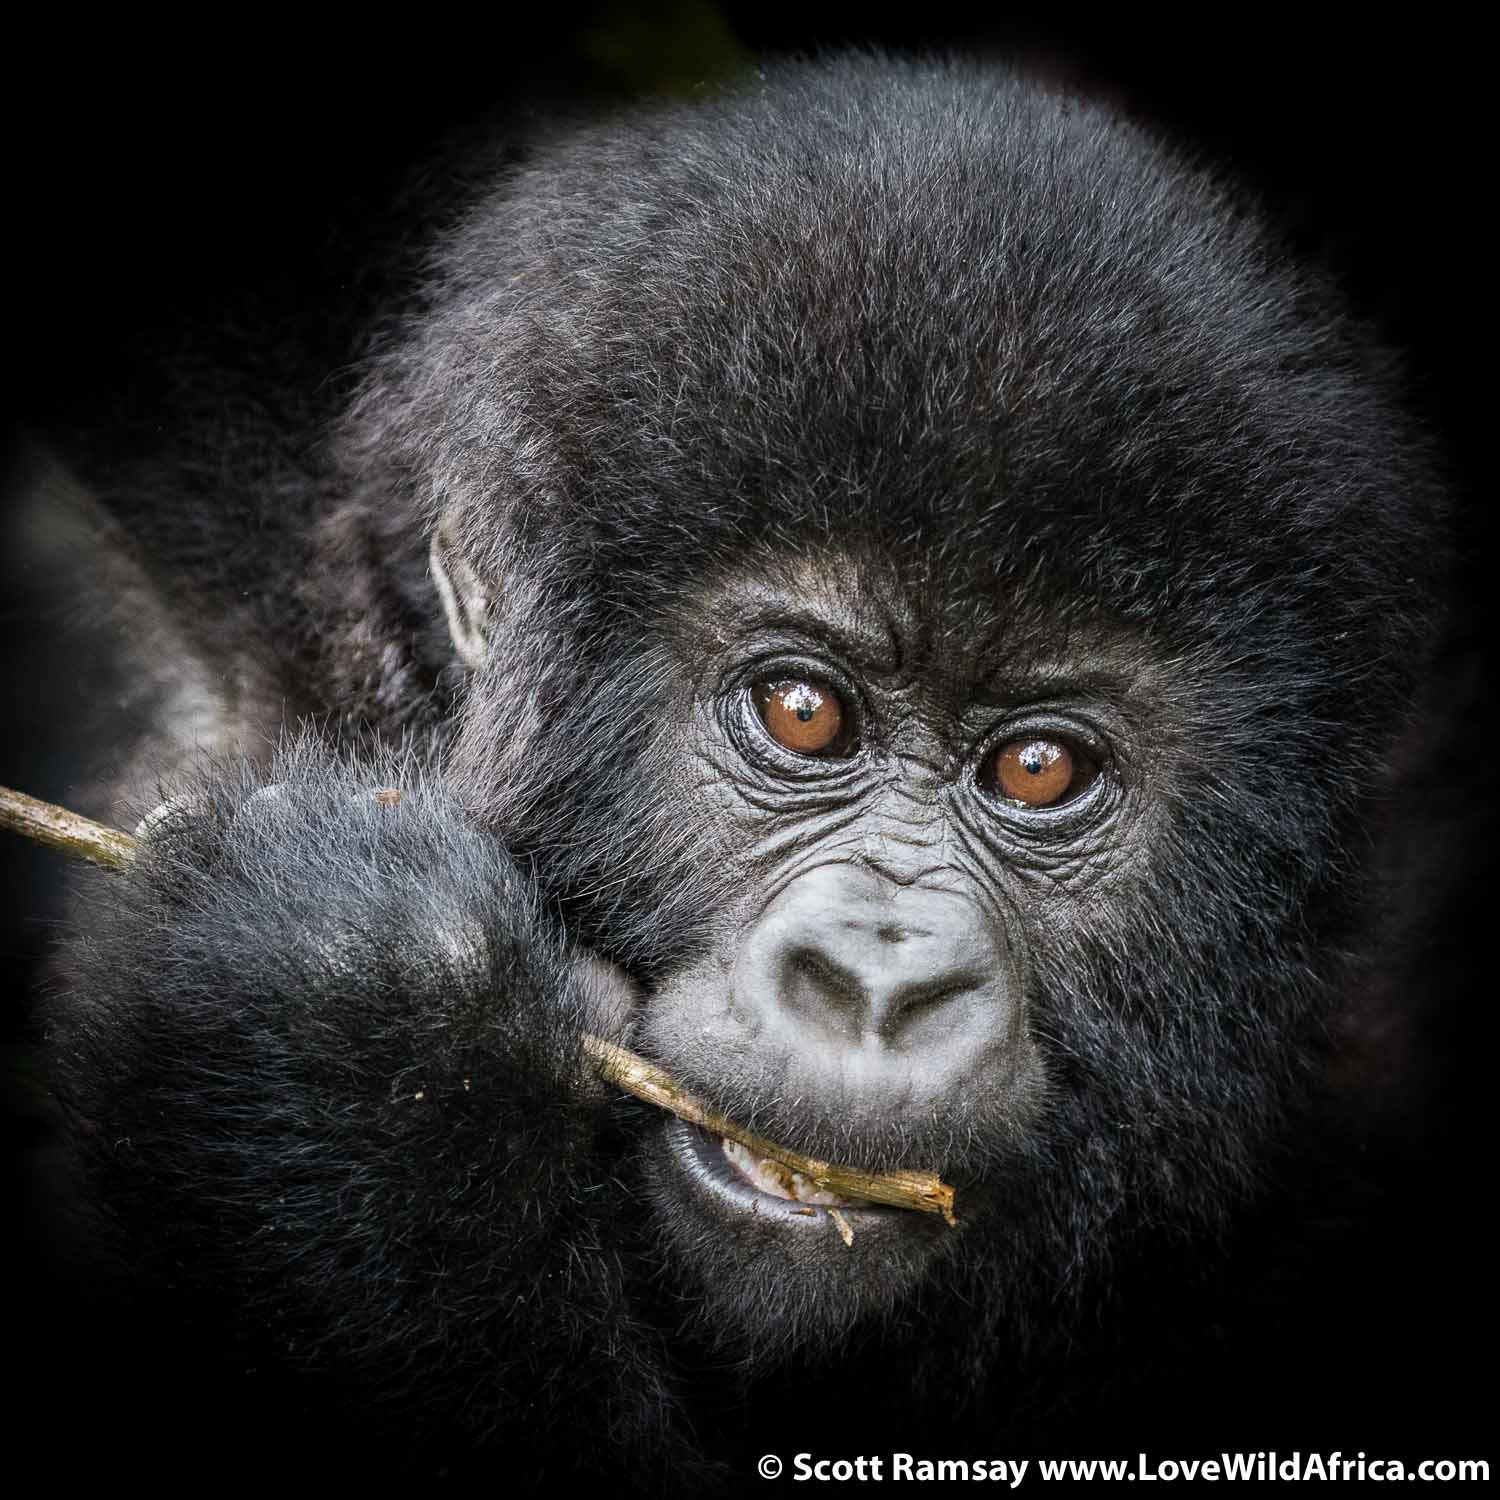 Maybe if more politicians and army generals went on a gorilla trek, there'd be fewer wars and conflicts...how does one stay angry when a baby gorilla looks at you like this?!